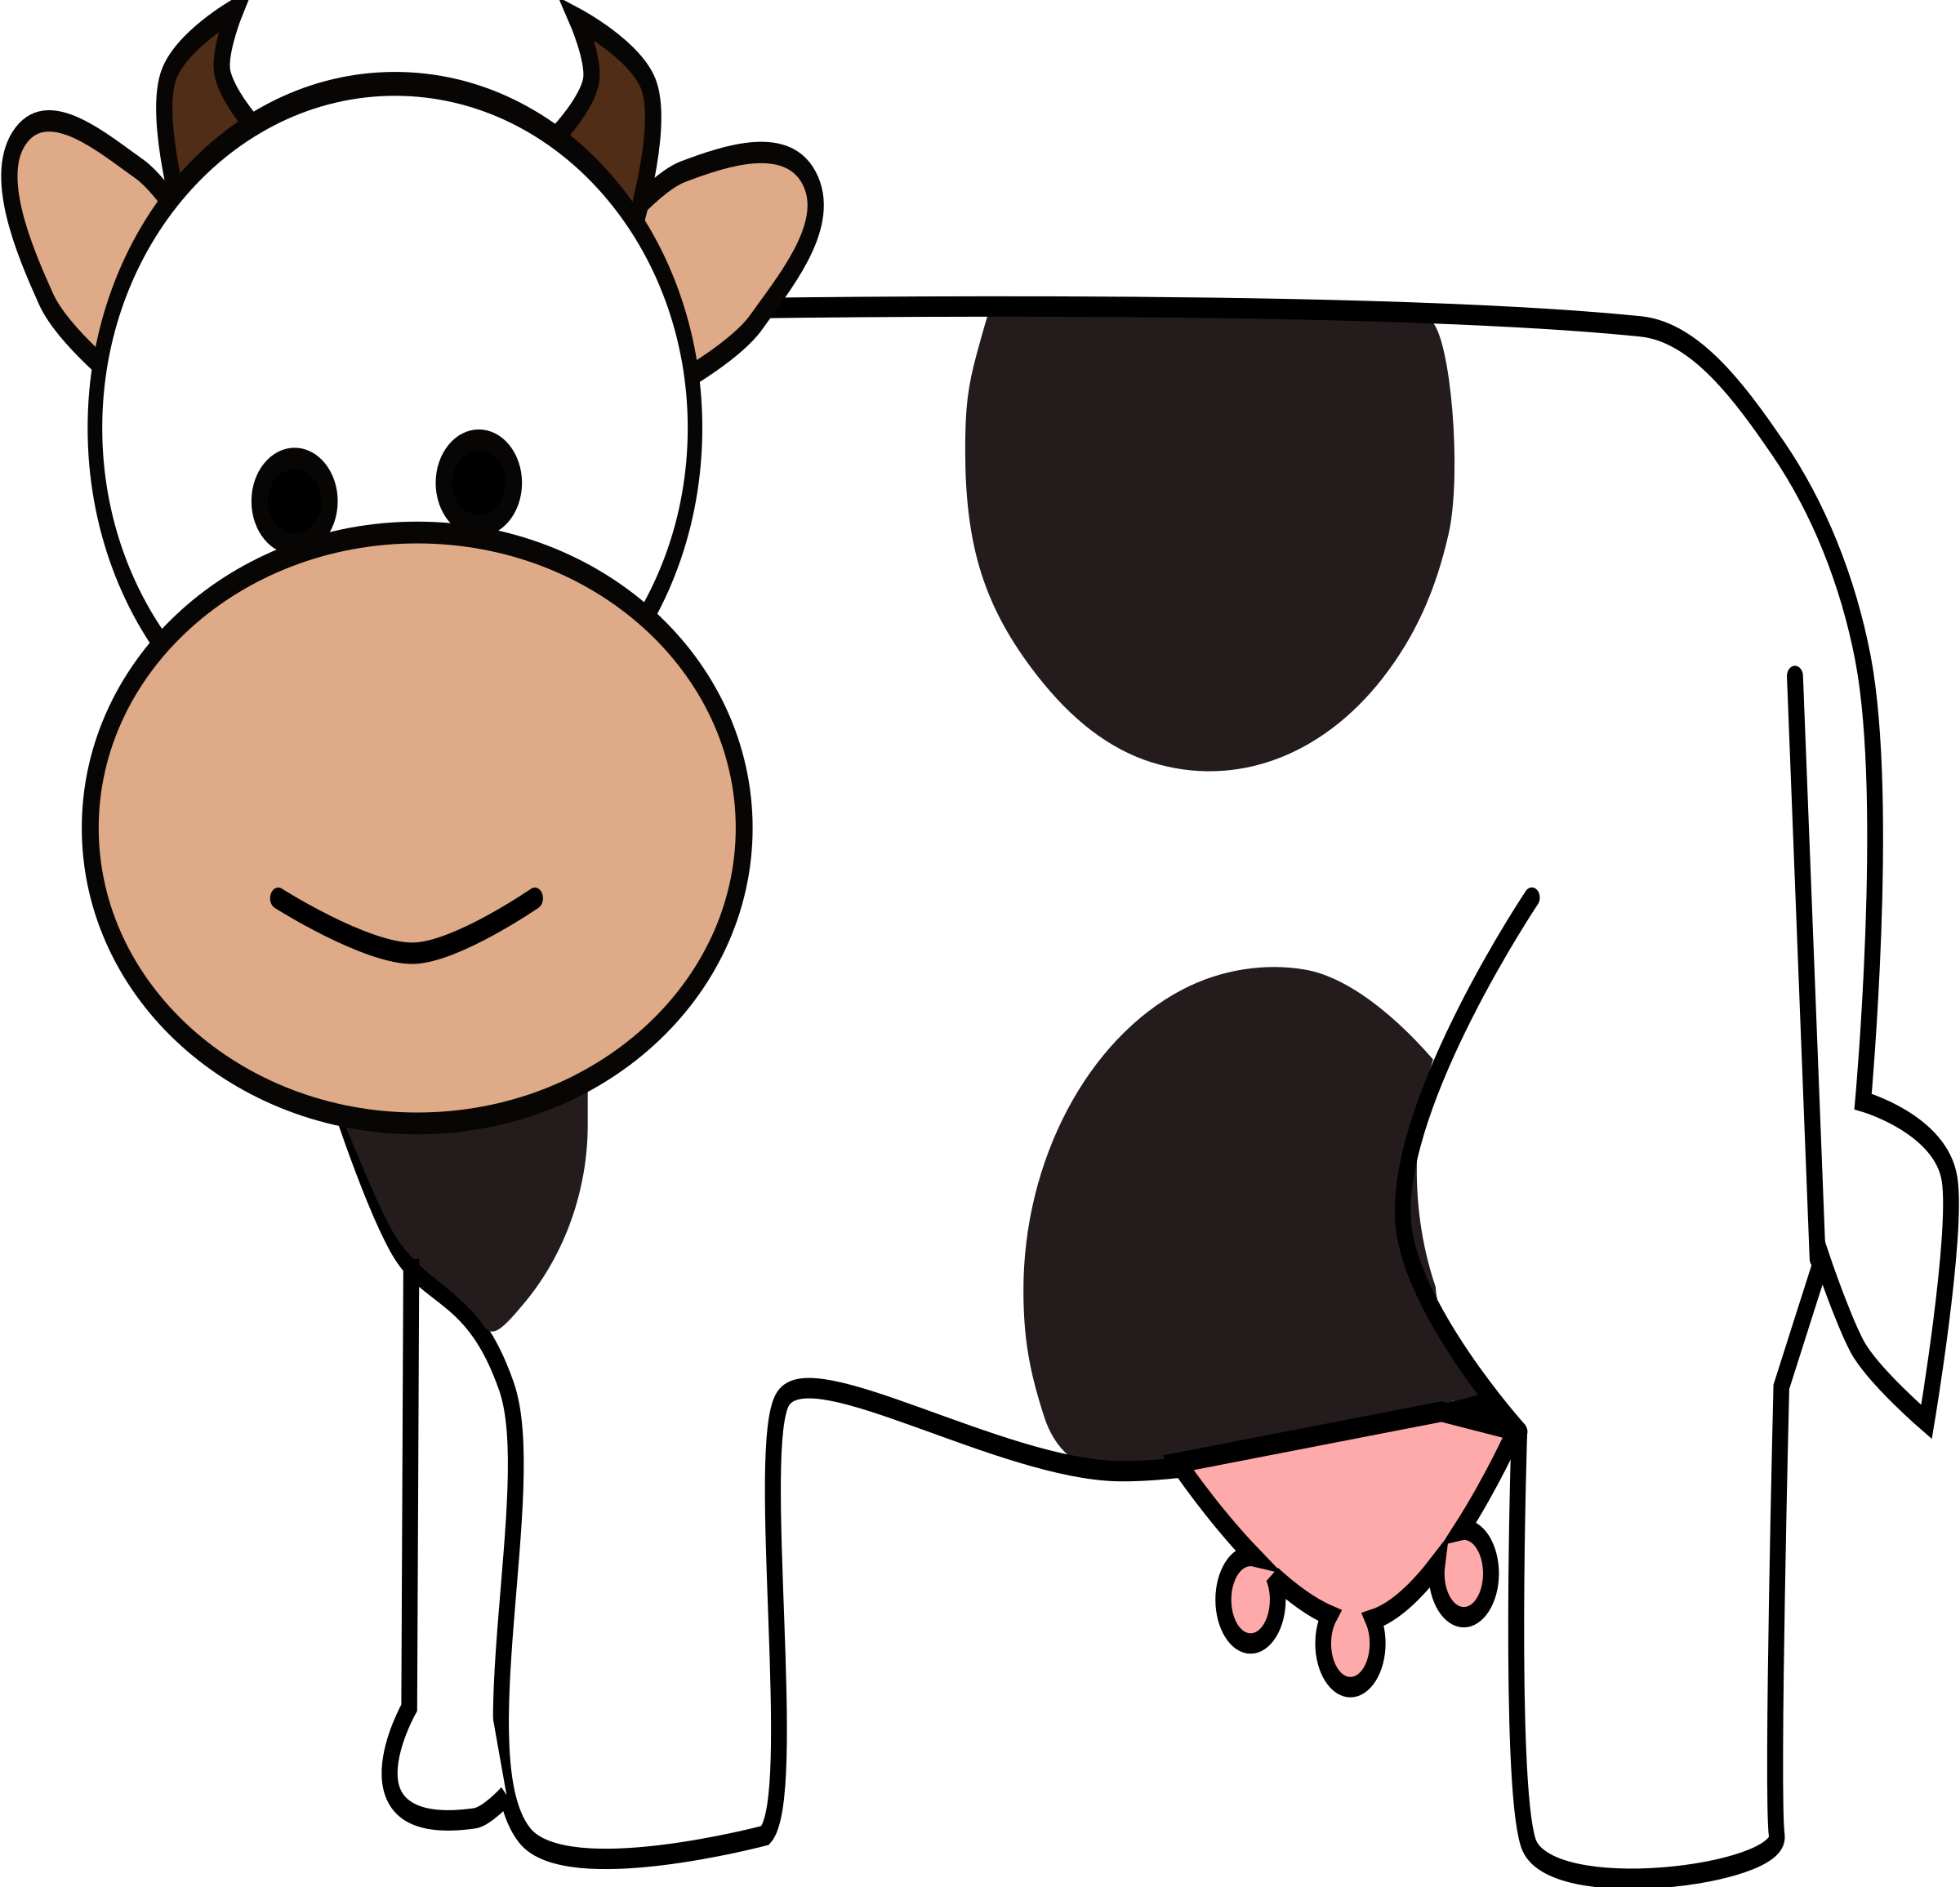 80 clipart happy. Cow big image png